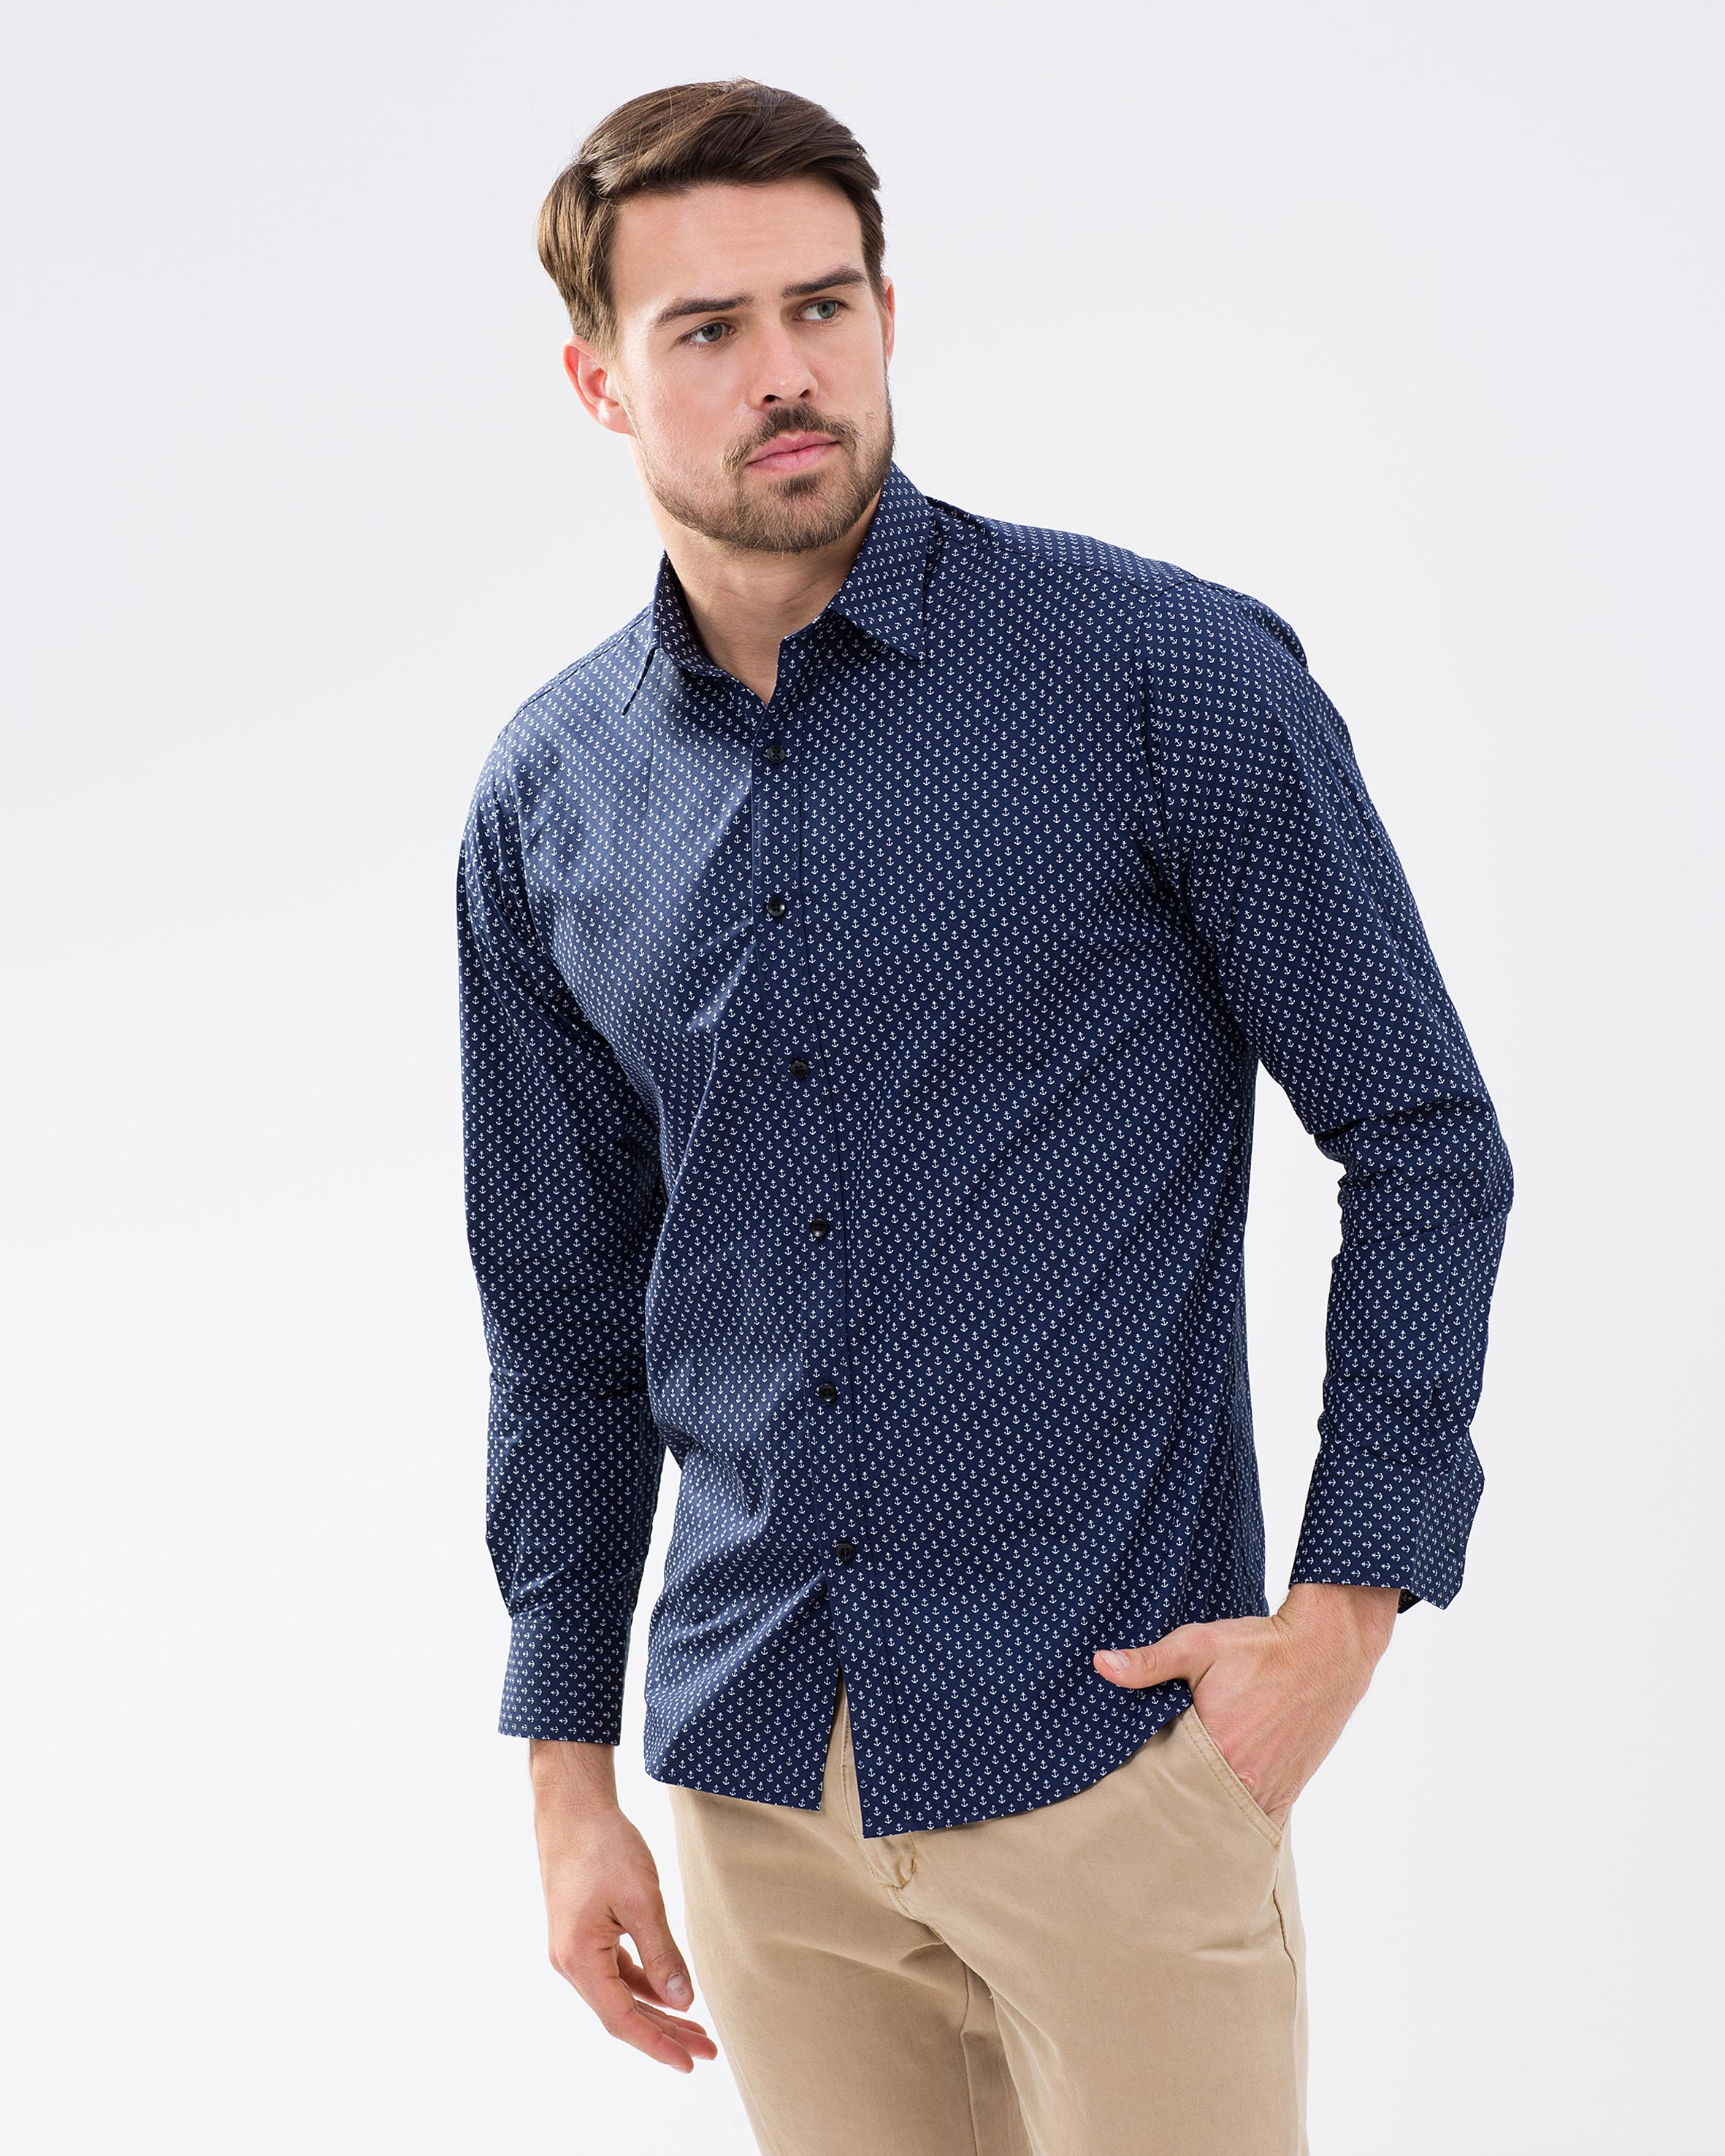 Compare Prices on Shop Dress Shirts- Online Shopping/Buy Low Price